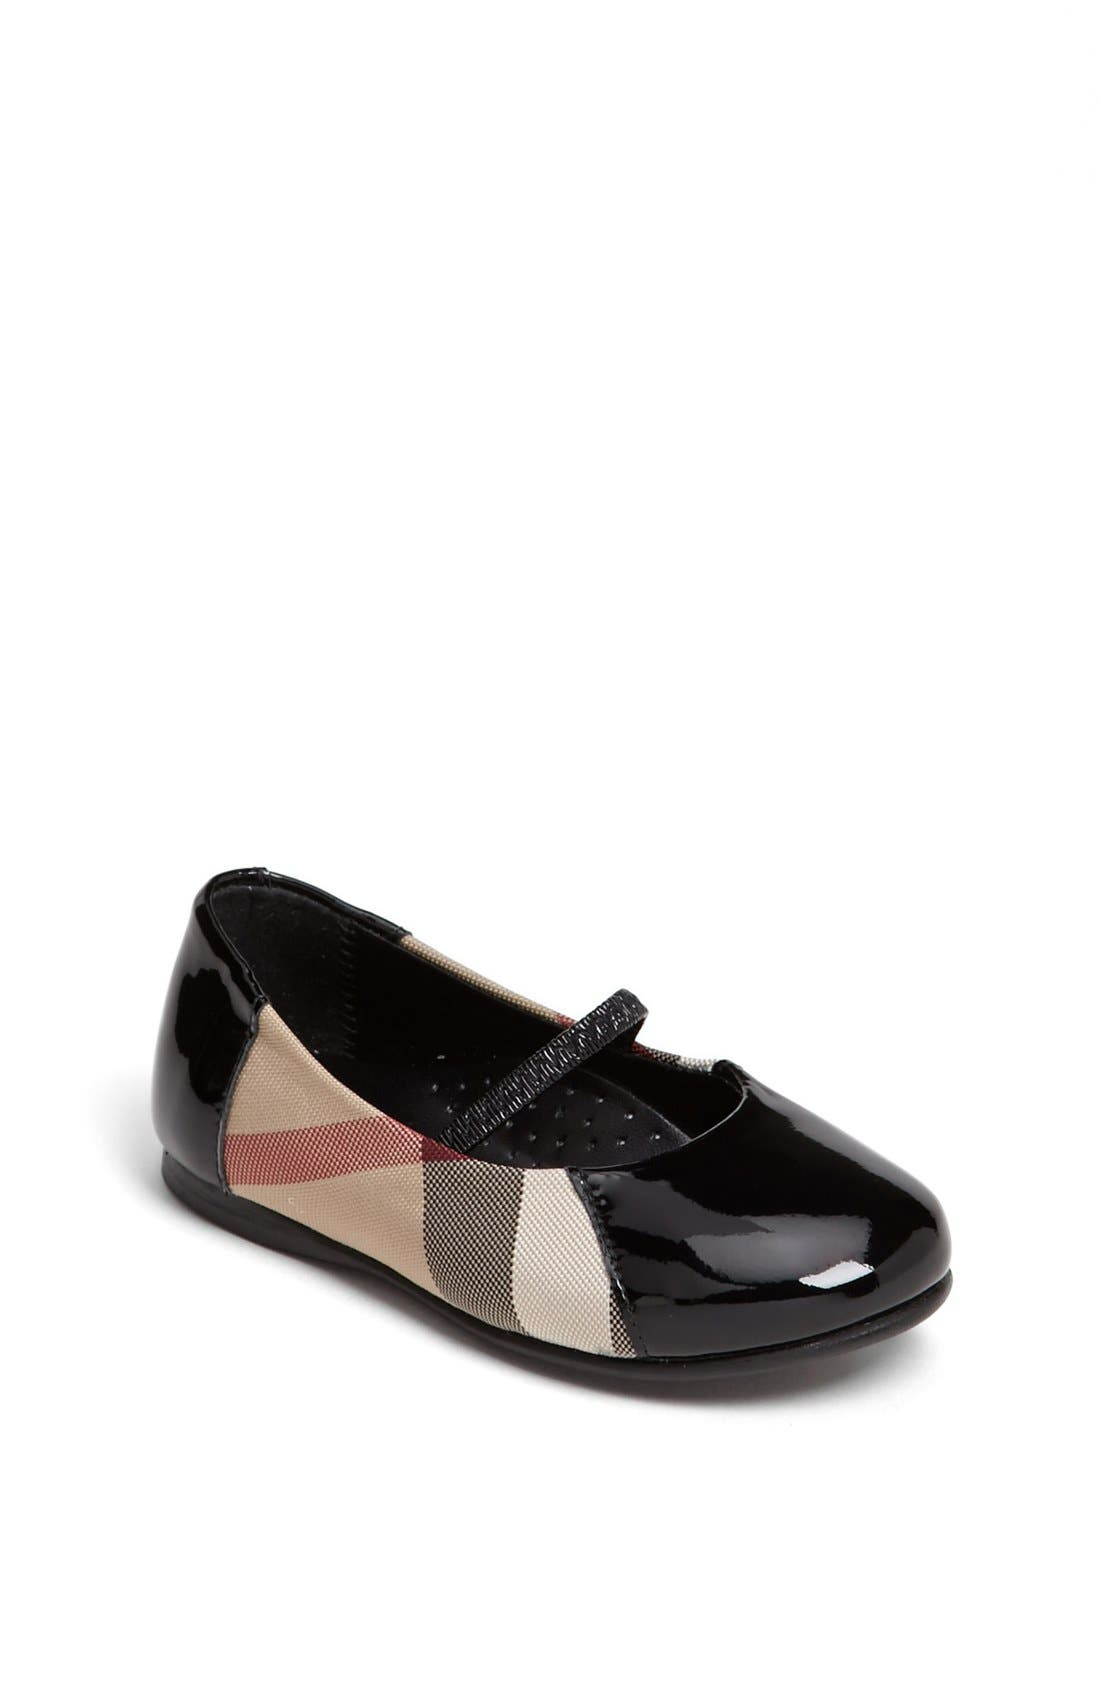 Main Image - Burberry 'Milly' Flat (Walker, Toddler, Little Kid & Big Kid)